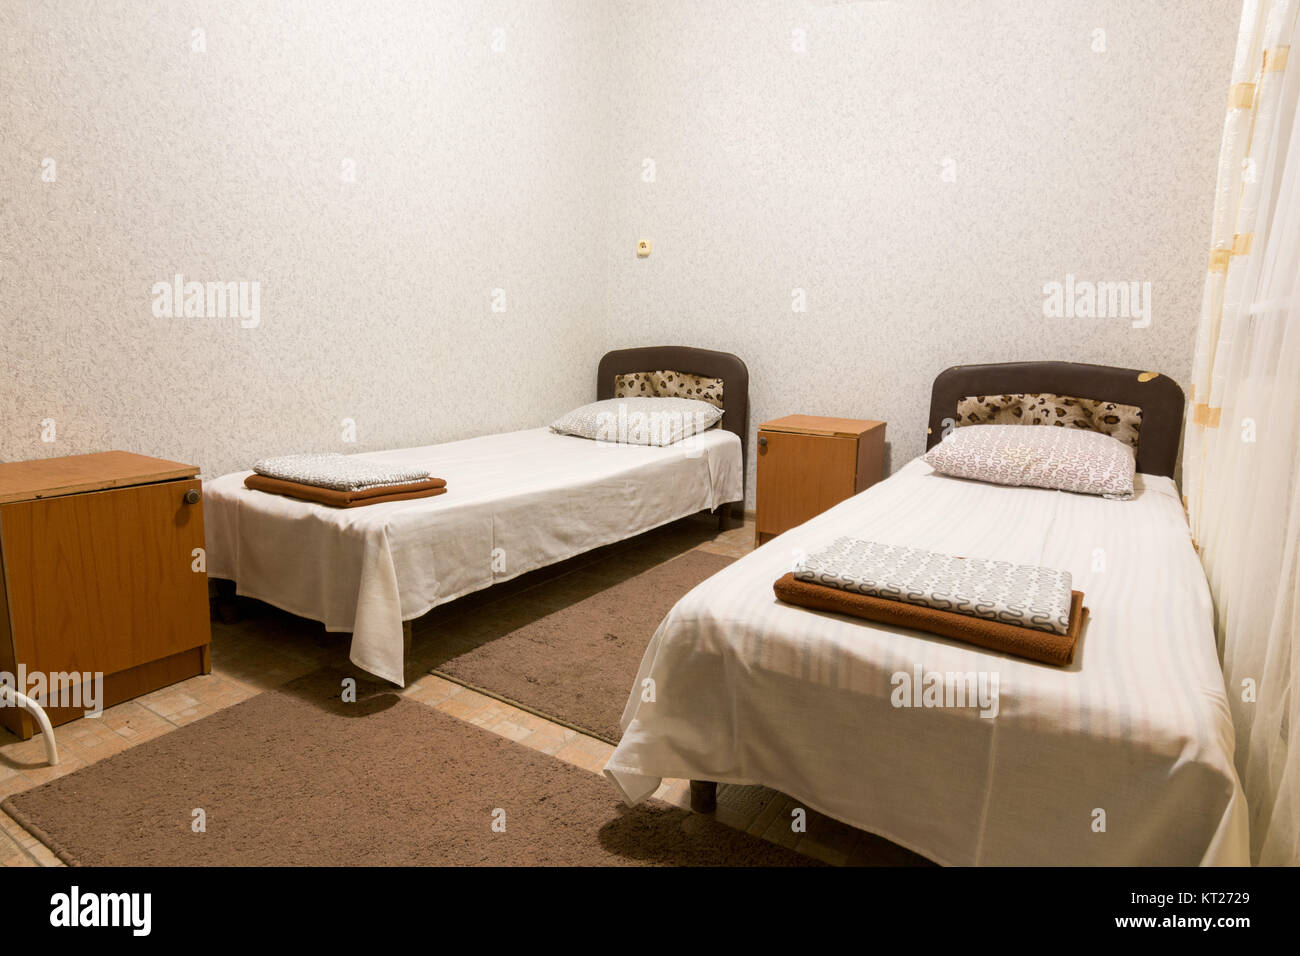 The interior of a small room with two beds Stock Photo ...